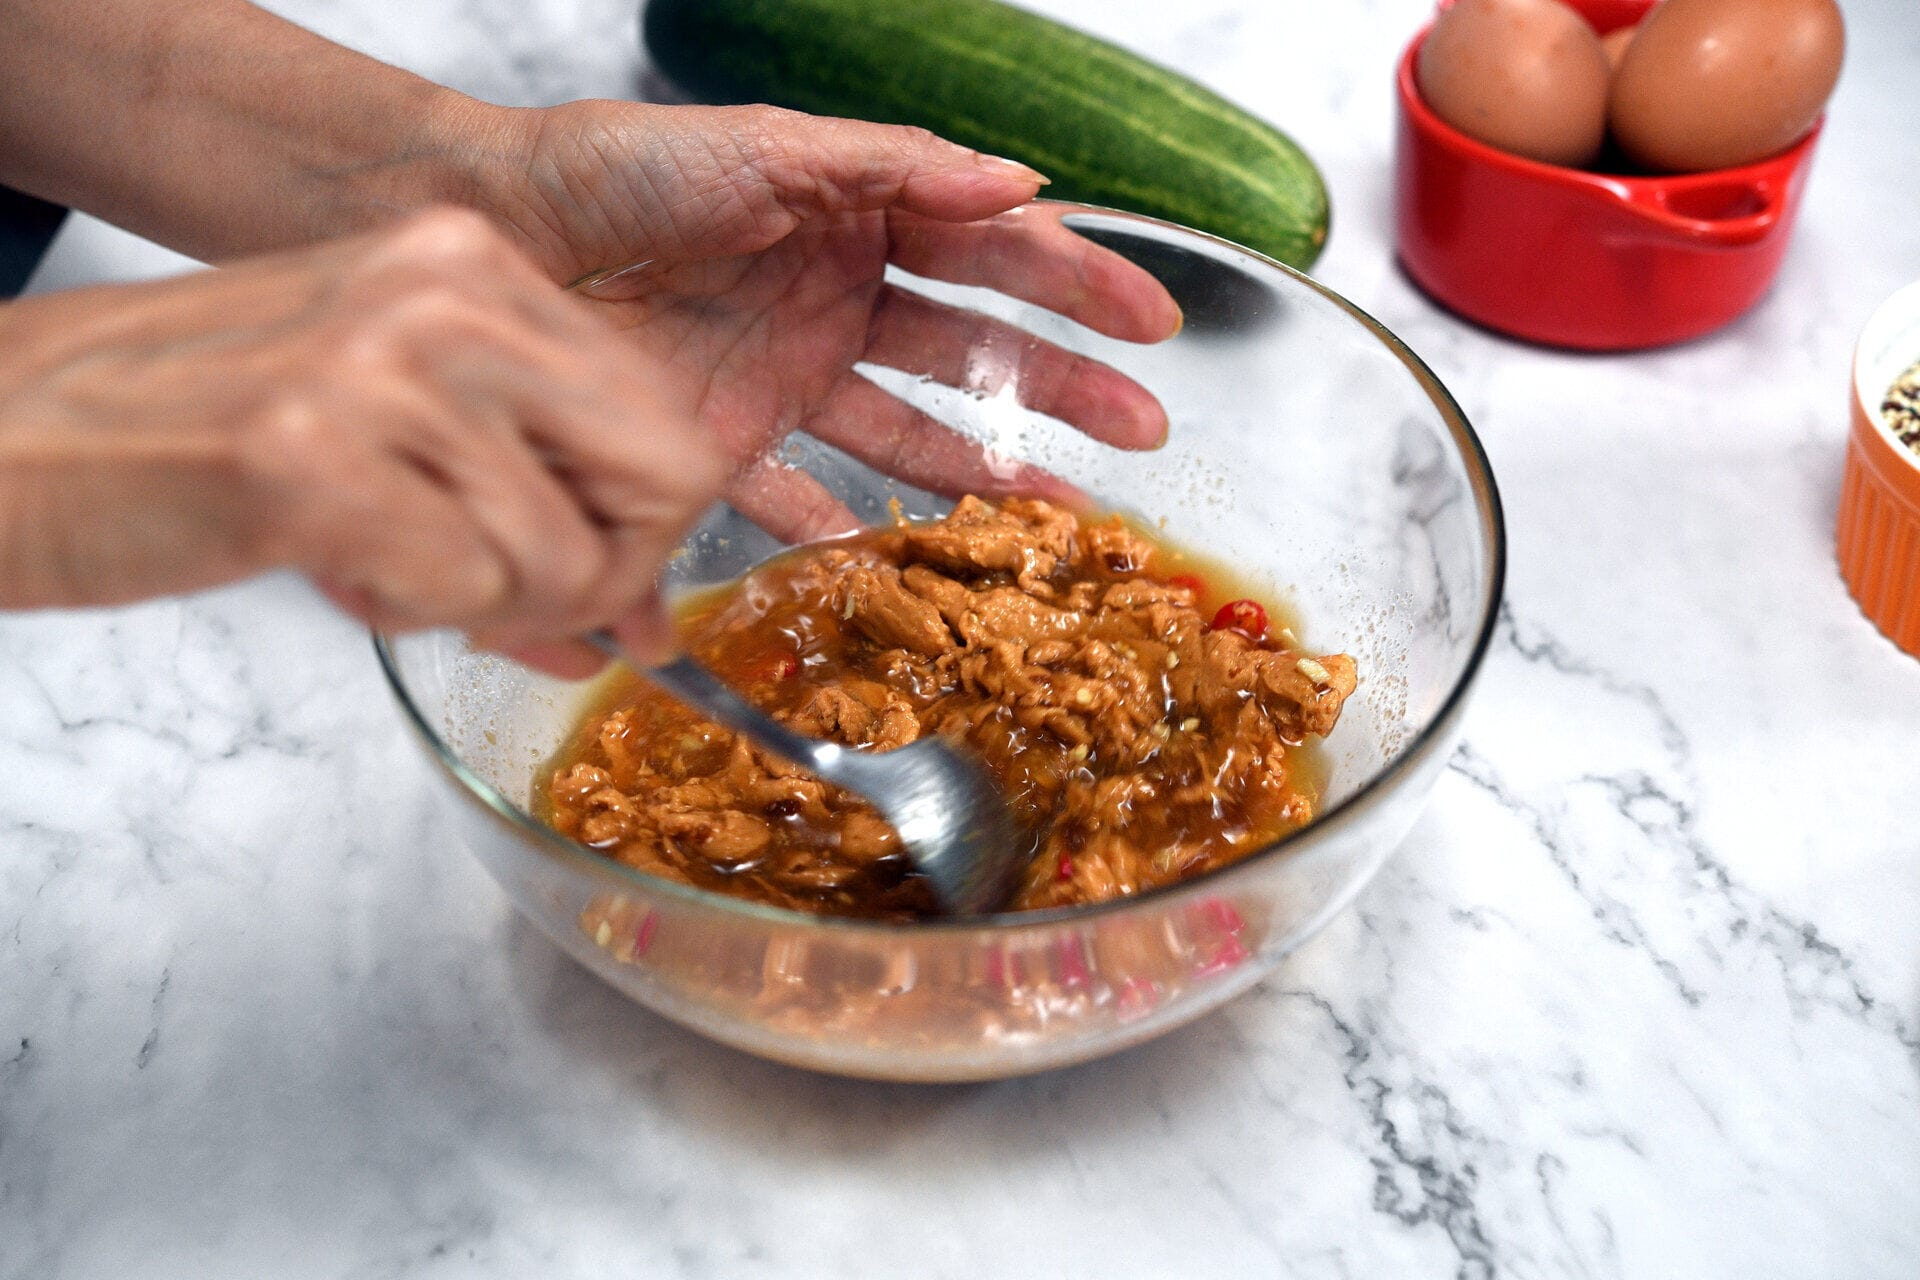 Mix sauce ingredients and blanch vegetables